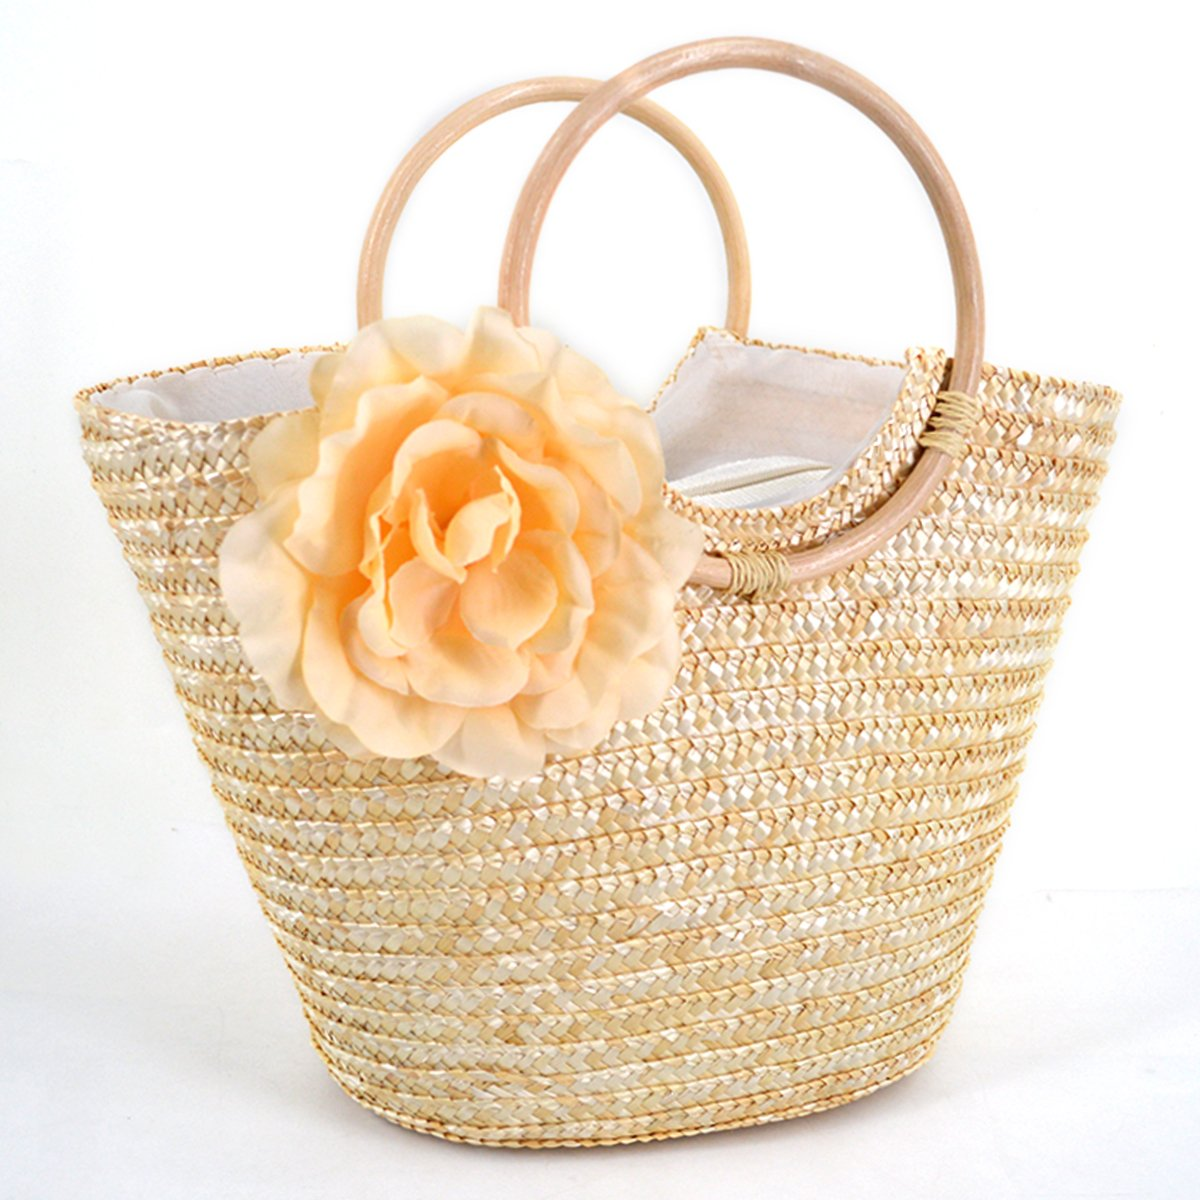 Mily Straw Woven Tote Bag Summer Holiday Beach Vacation Beaded Rosette Tote Handbag Beige